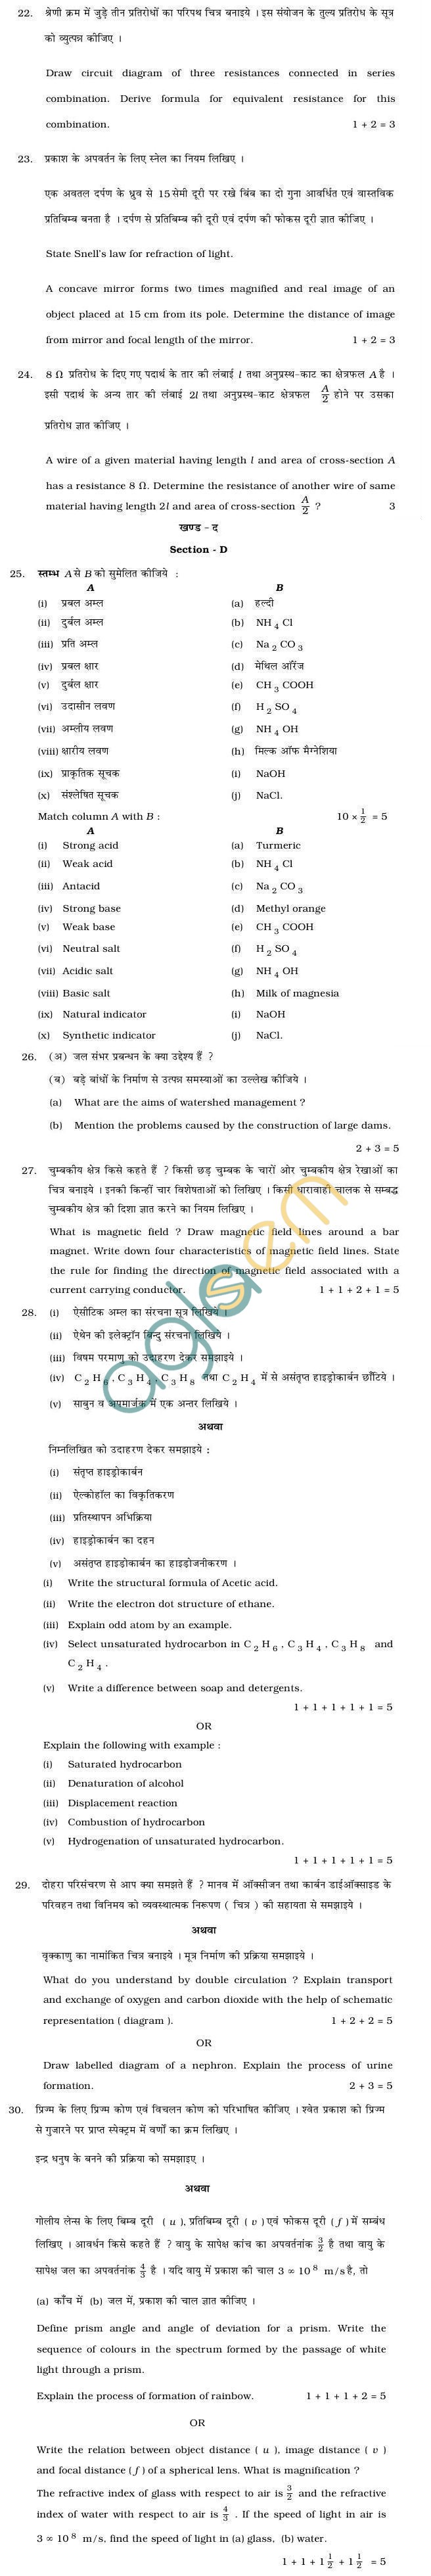 Rajasthan Board Praveshika Science Question Paper 2013